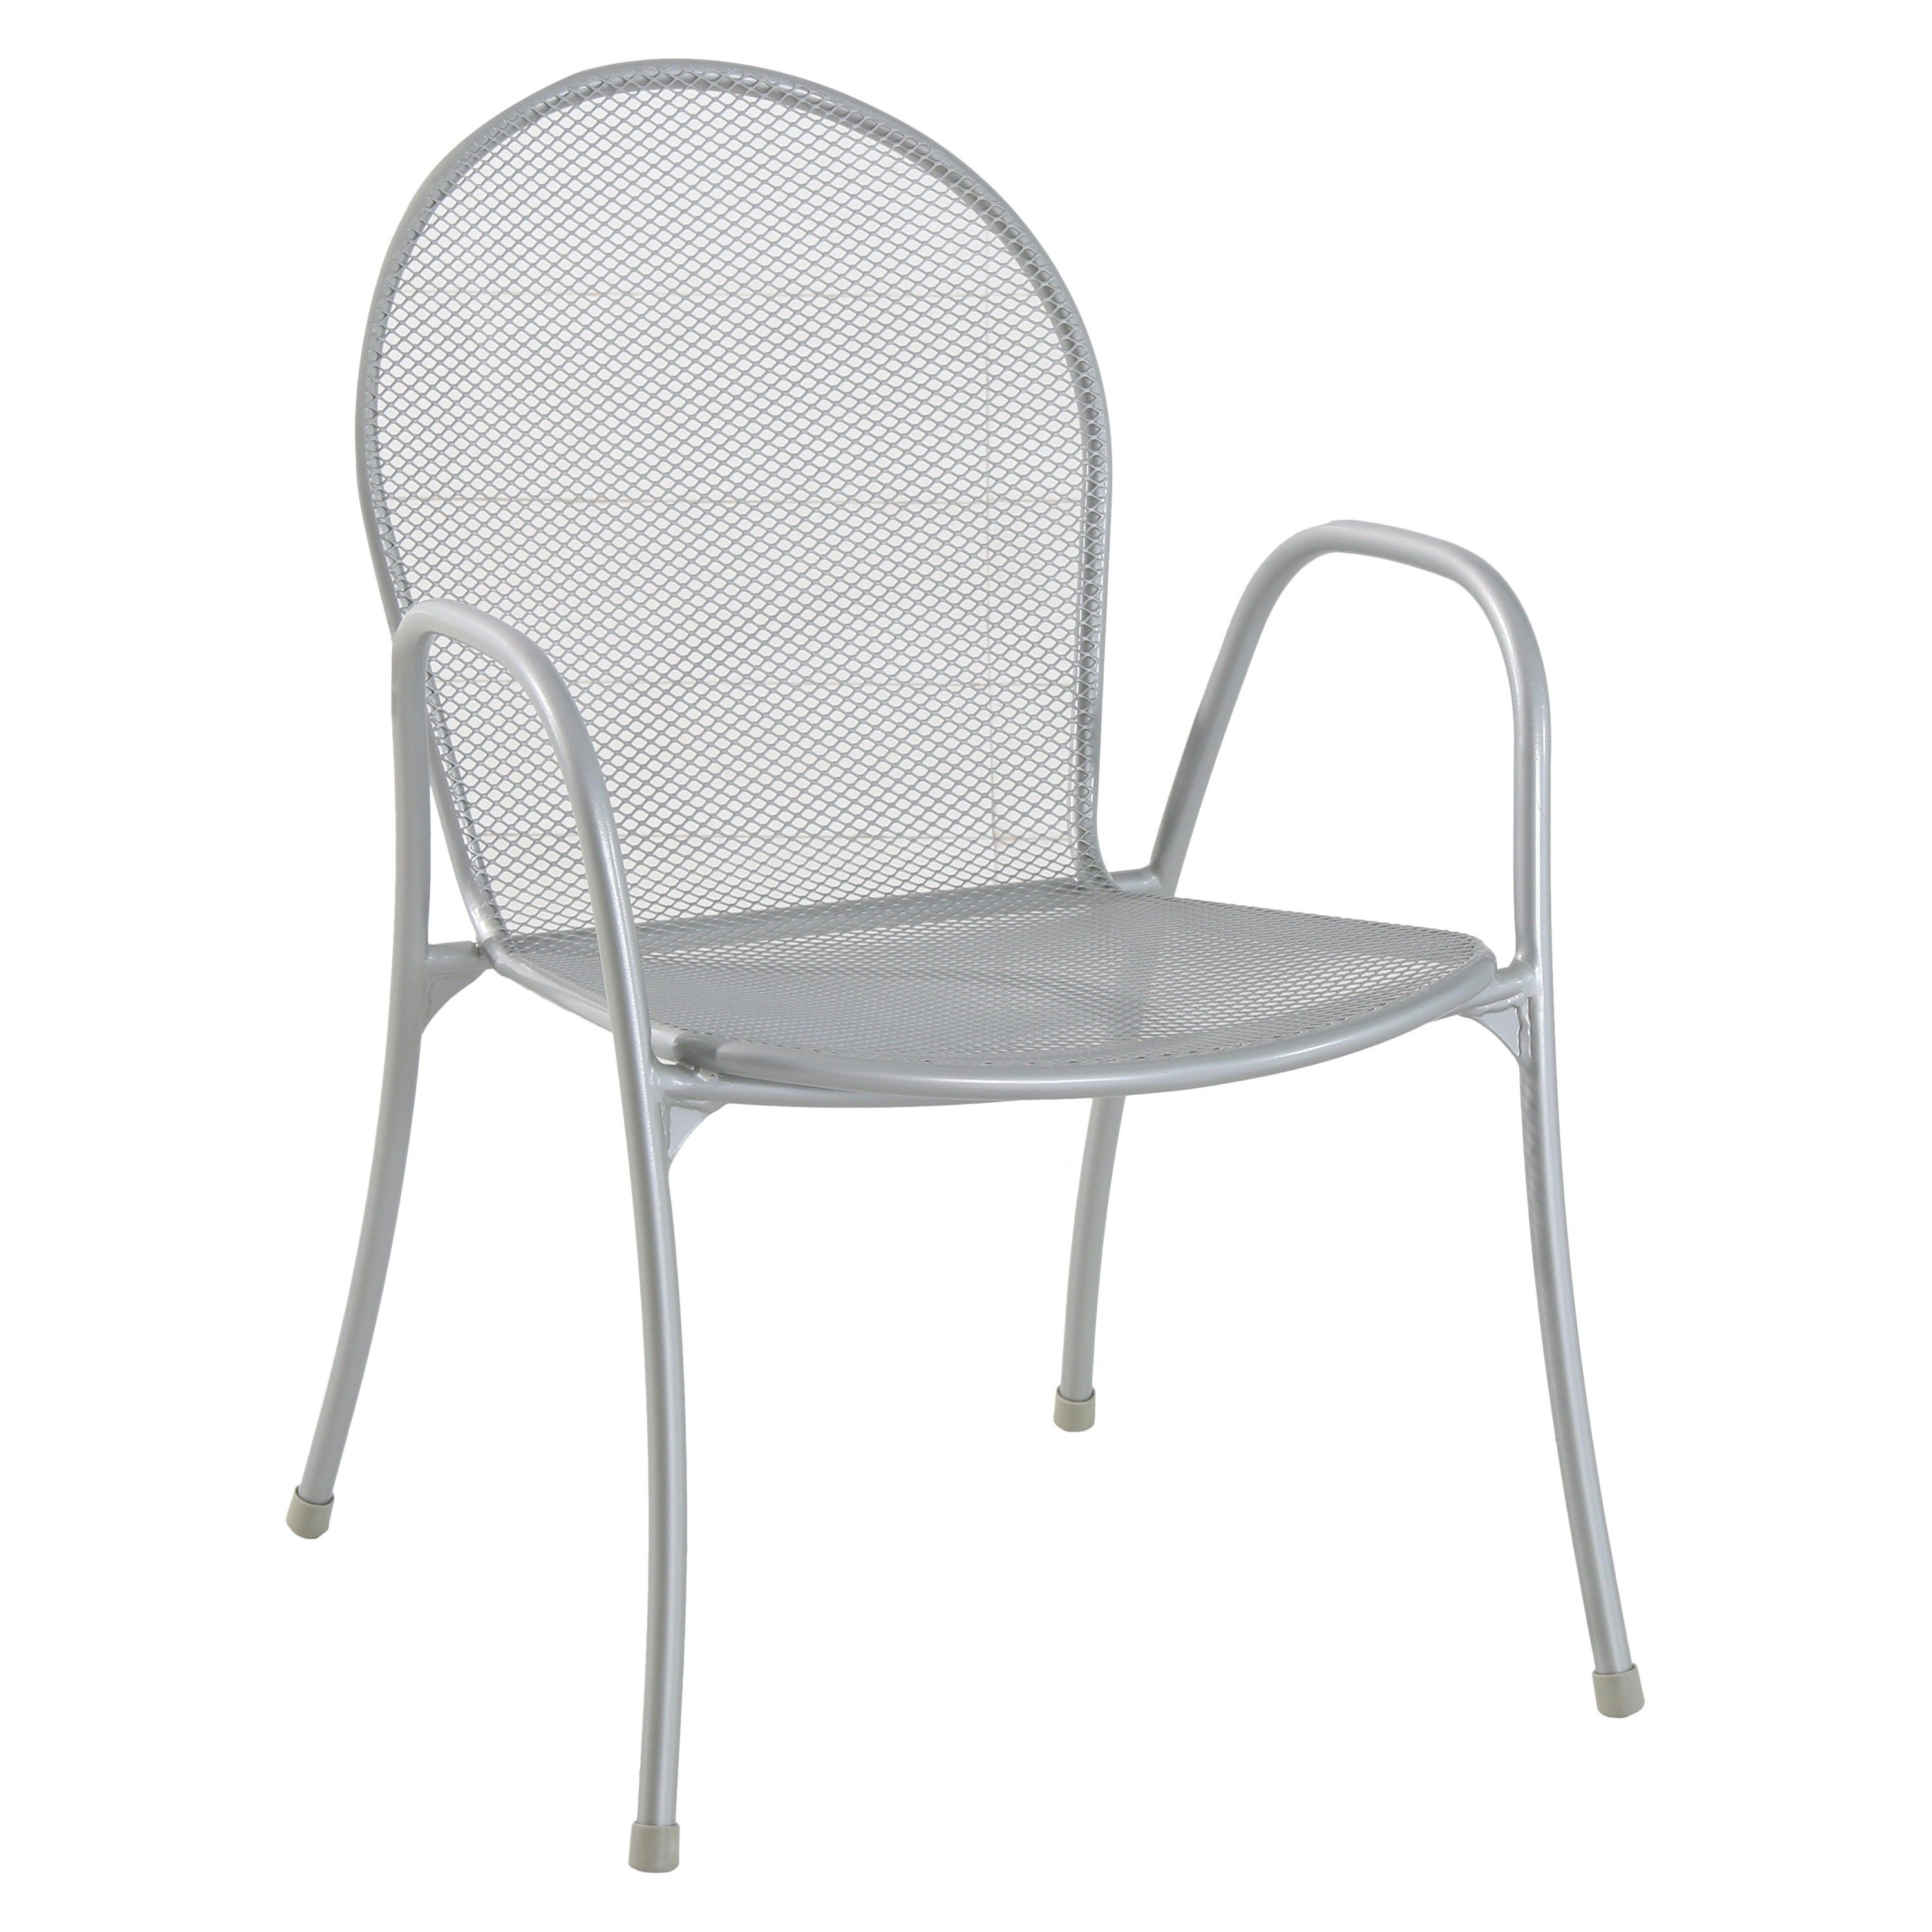 Metal mesh patio chairs - Carmack Metal Mesh Stack Patio Chair Silver Threshold